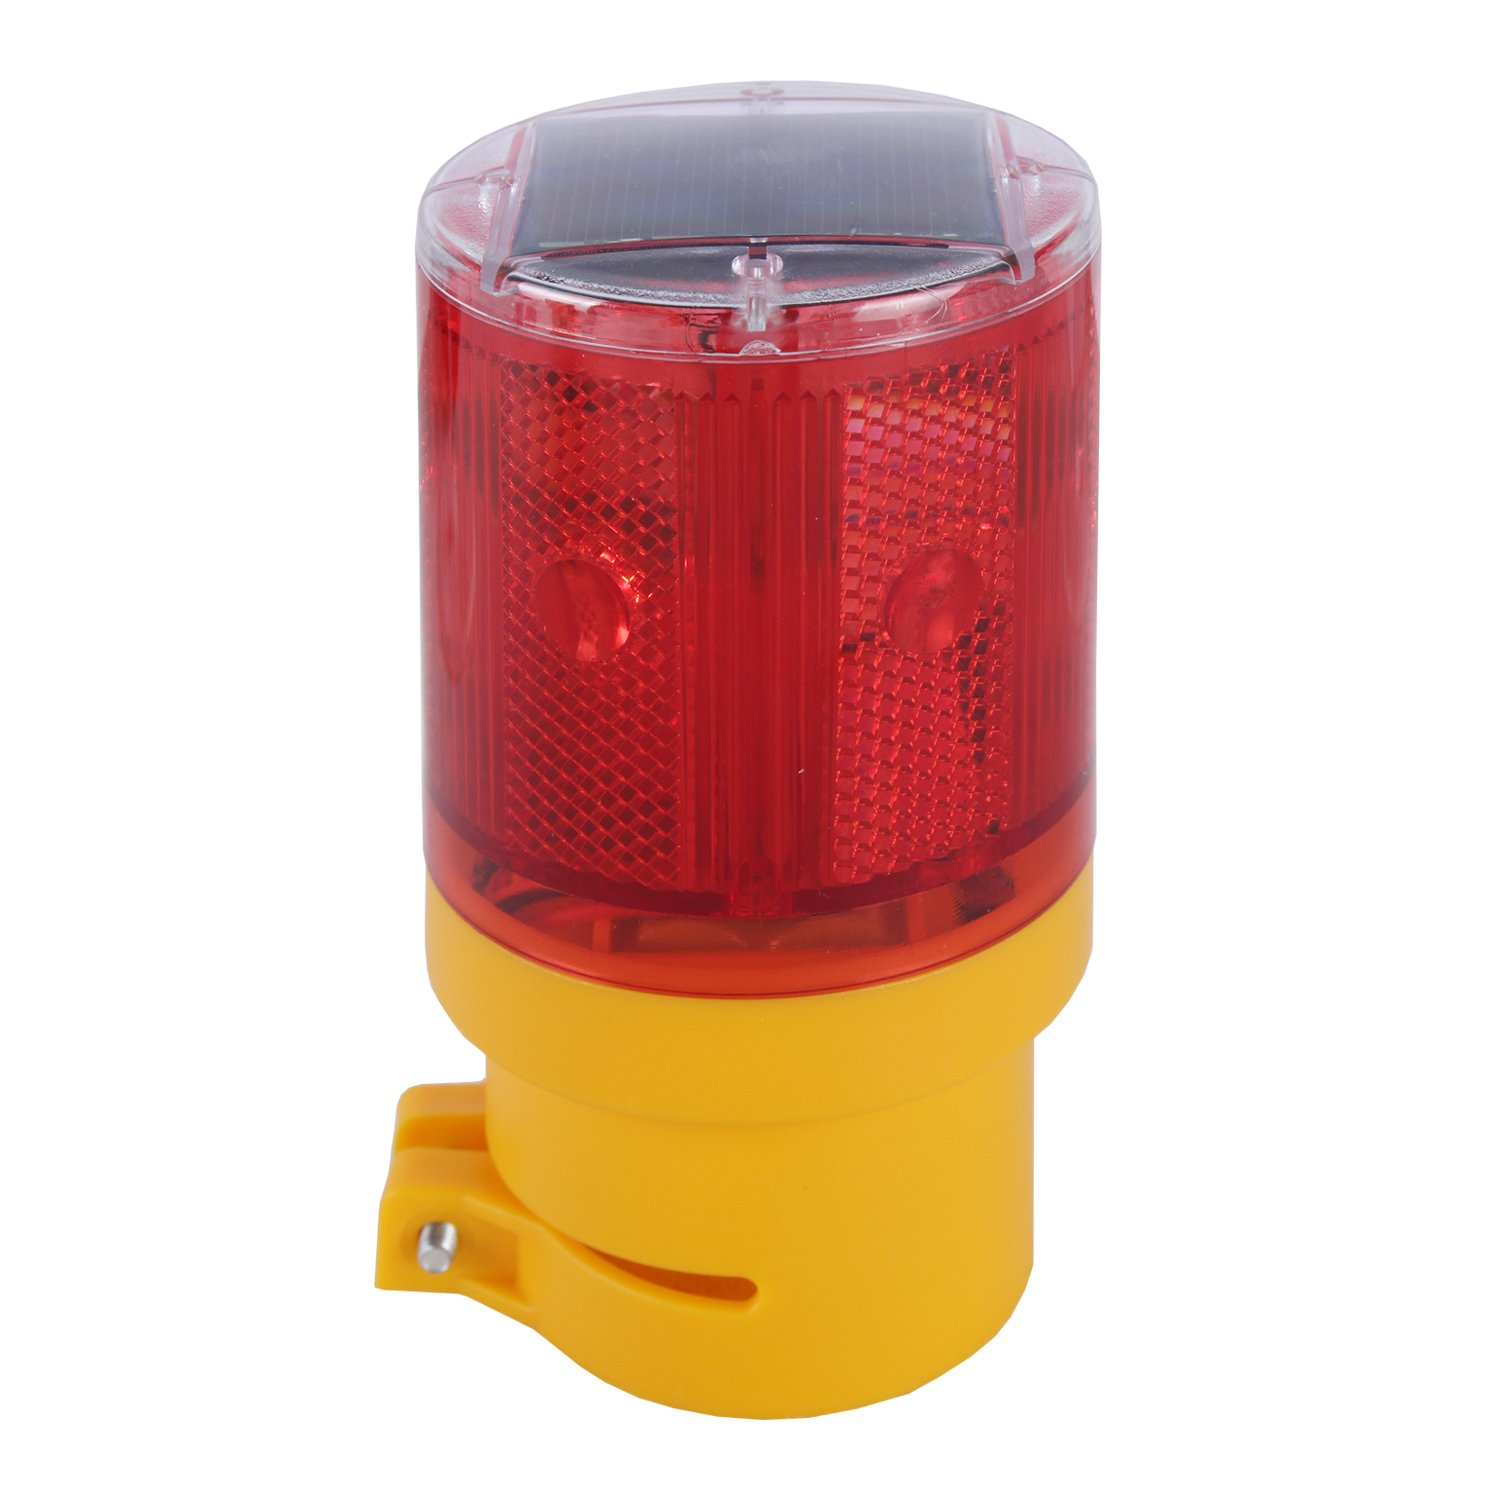 Qooltek Solar LED Warning Light Wireless Control Garden Warning Lamp Flashing Barricade Light Road Construction Safety Signs Flash Traffic Light Flicker Beacon Lamp (Yellow) 4332997992